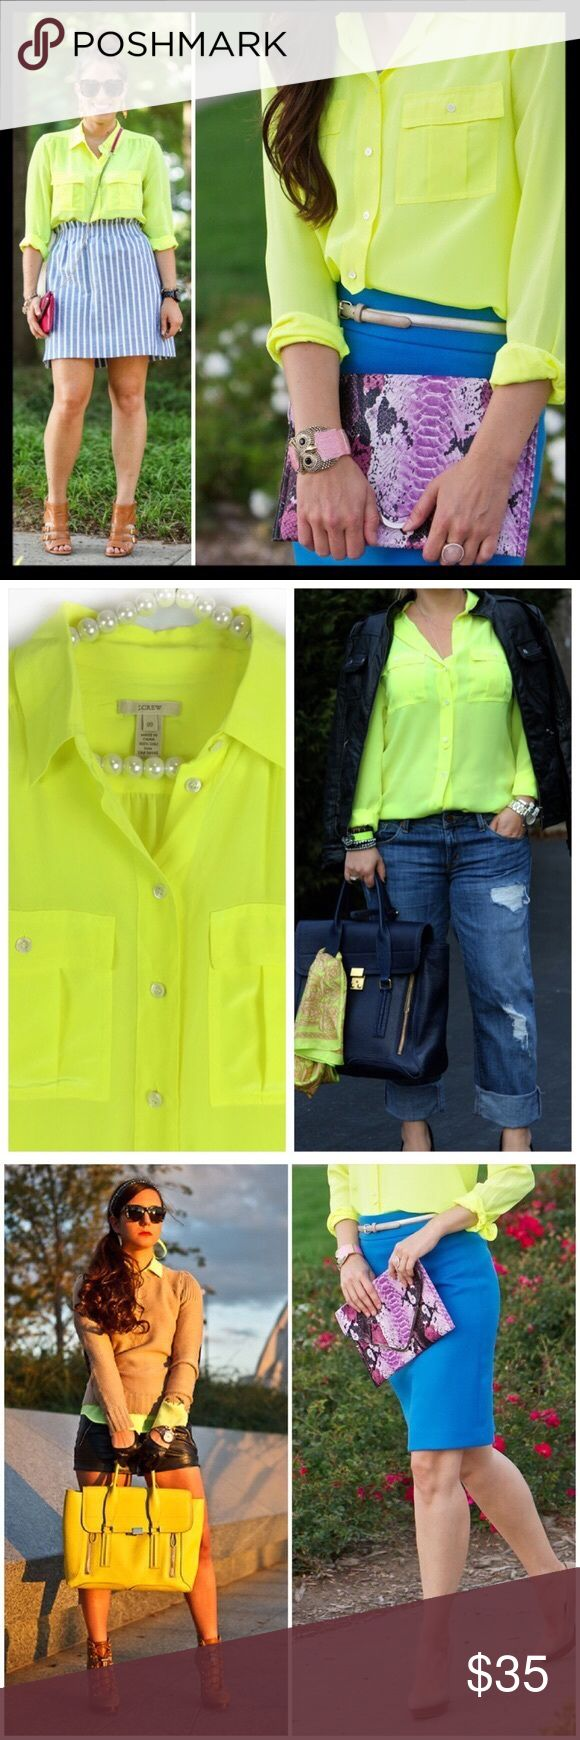 j. crew // neon yellow 100% silk blythe blouse A classic army shirt reimagined in drapey and feminine silk crepe de chine. Dressed up or down, this top is the ultimate in effortless chic. We're sporting ours tucked into sleek pencil skirts for extra polish or languid and loose for that cool-girl look we love. This color is beyond awesome. It's a pretty true neon yellow. Excellent condition, no flaws to note. Actual shirt shown on pearl hanger in photos 2 and 4. J. Crew Tops Blouses